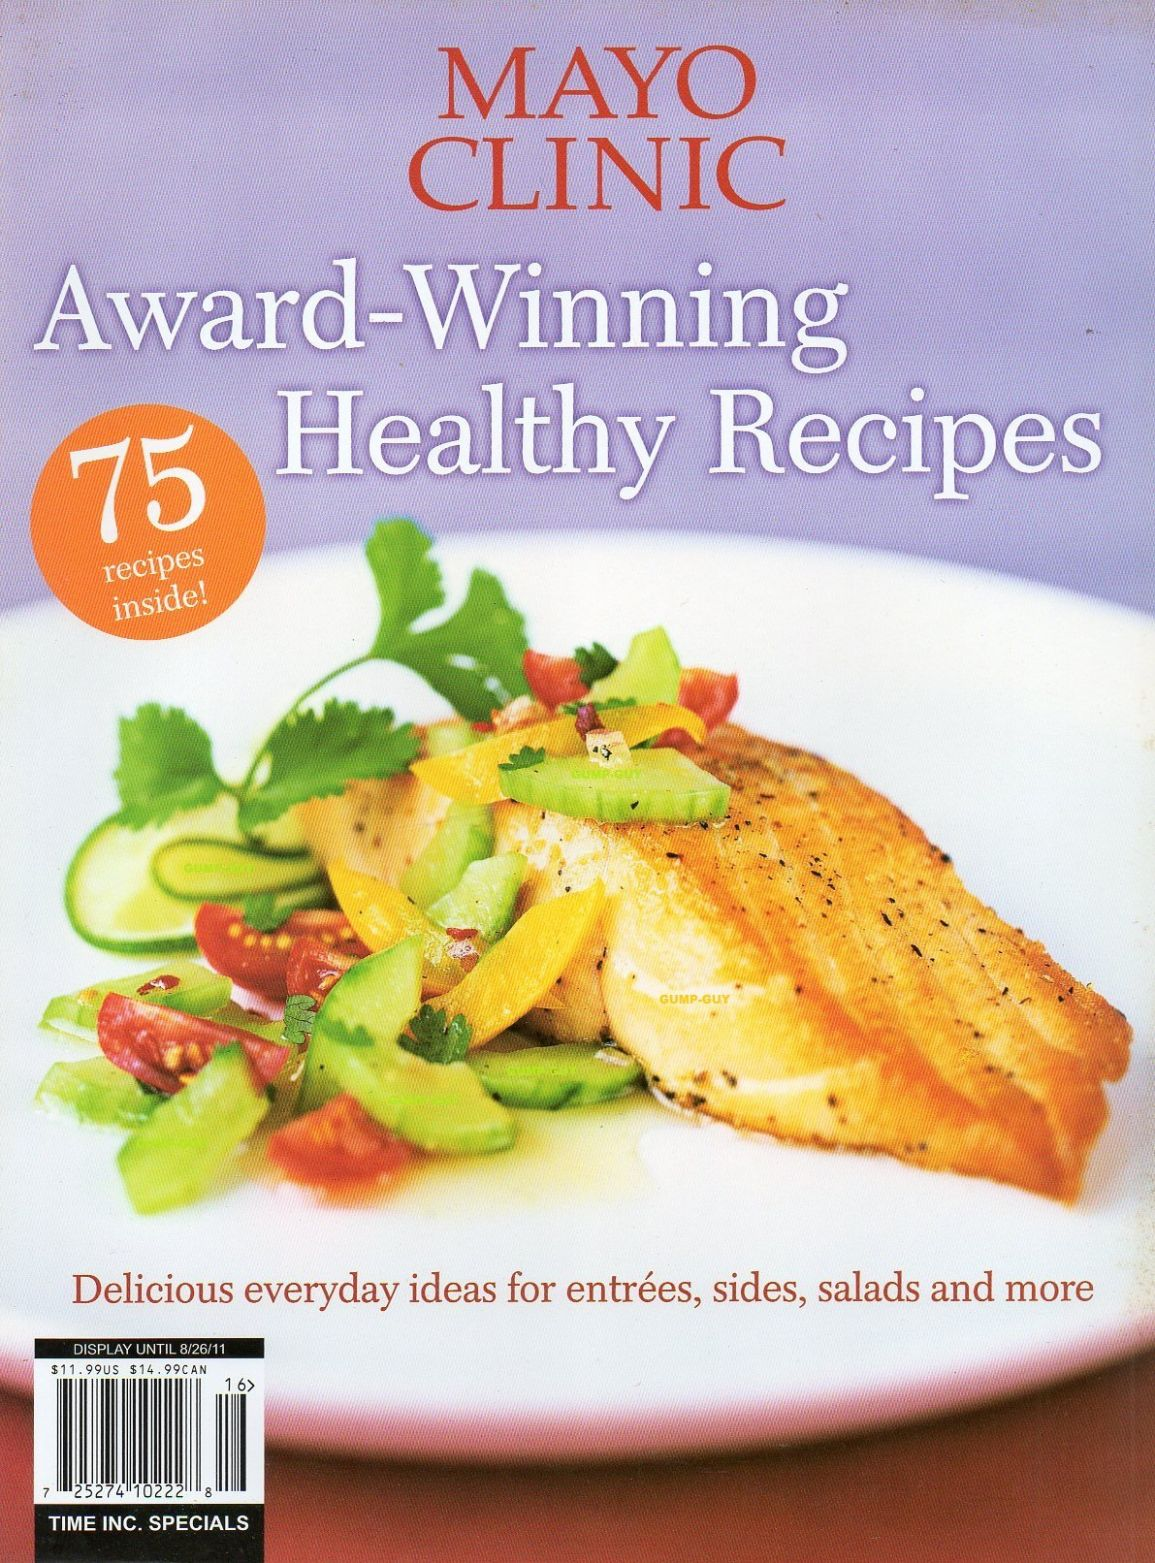 Mayo Clinic Award-Winning Healthy Recipes: Amazon